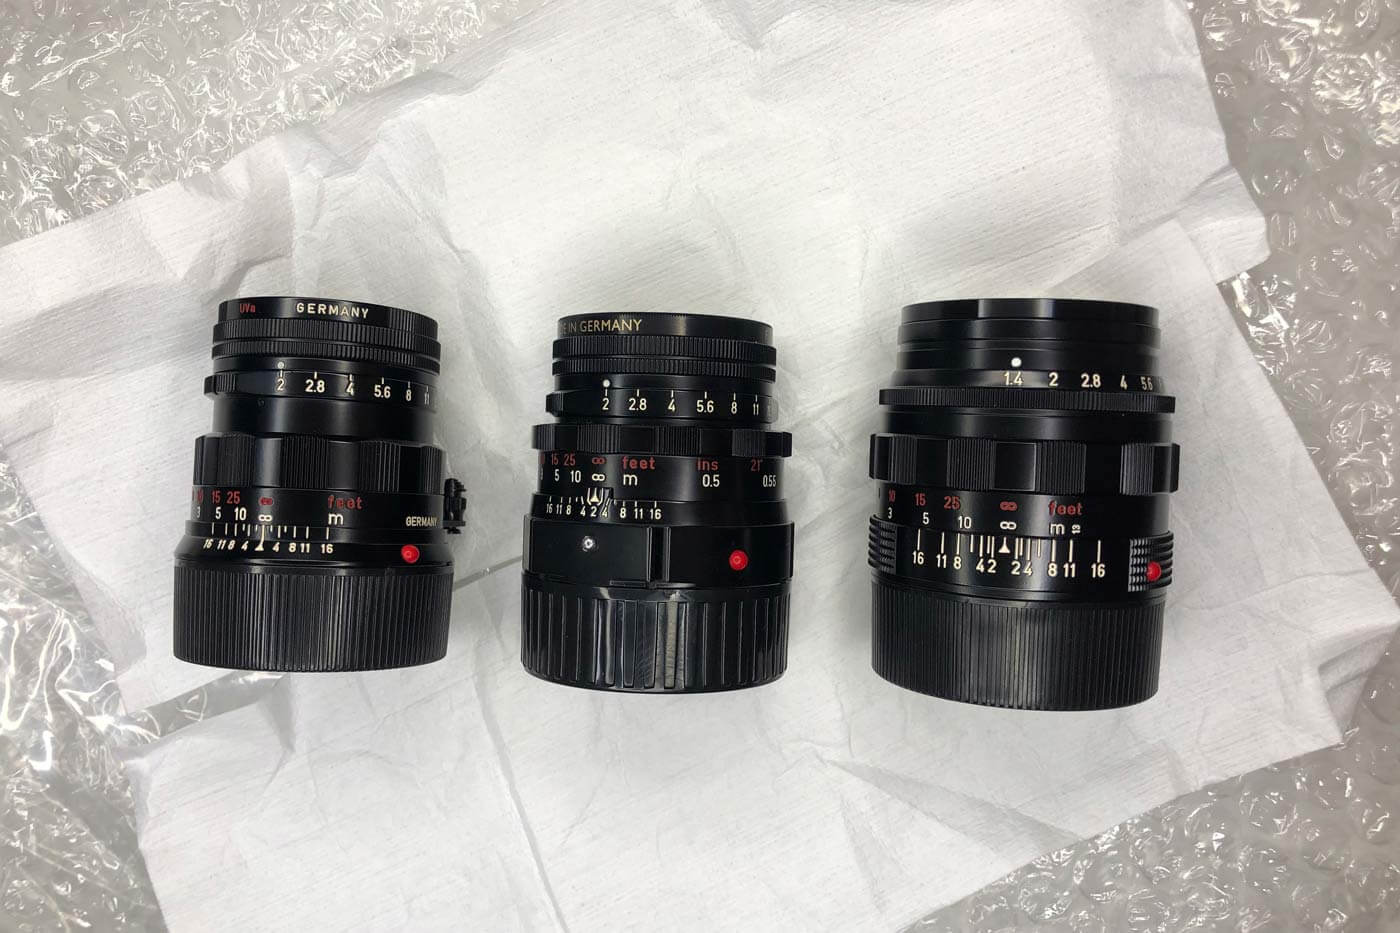 guide-repaint-repainting-leica-camera-lens-lenses-japan-kanto-cameras-black-brass-quality-best-option-experience-9-months-summicron-dr-rigid-dual-range-50mm-summilux-v2-red-scale